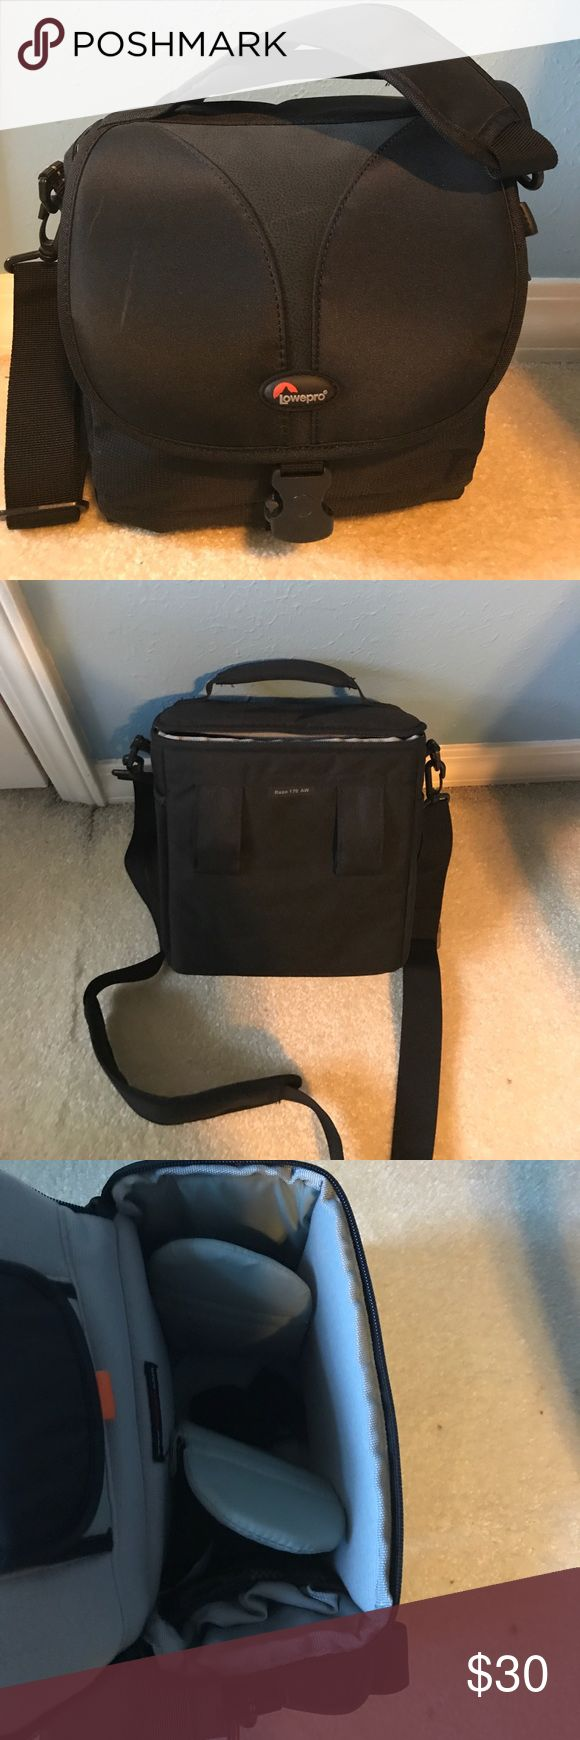 Black camera bag Black vinyl camera bag. I'm excellent condition. Never been used. 8.5 inches tall and 9 inches wide. 5 inches deep. Mini padded compartments. Bag includes shoulder strap. lowepro Bags Shoulder Bags